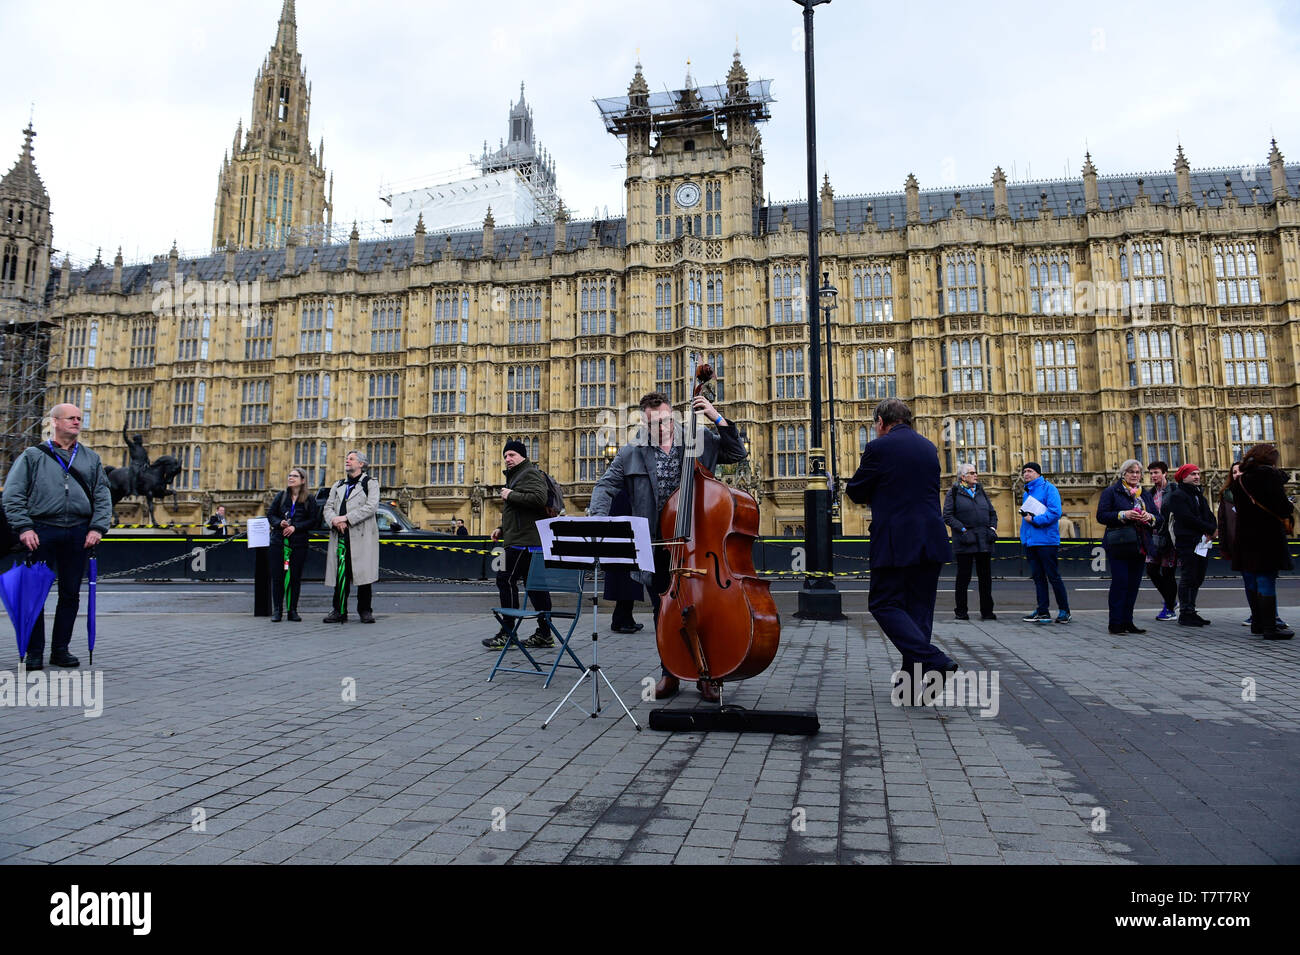 London, UK. 8th  May, 2019. Dash Arts, anti-Brexit European Flash Mob, Outside Westminster Abbey, performing a 5 minute extract from Bethoven's 9th (Ode to Joy) celebrating the enduring links between UK and Europe Credit: Van Quan/Alamy Live News Stock Photo